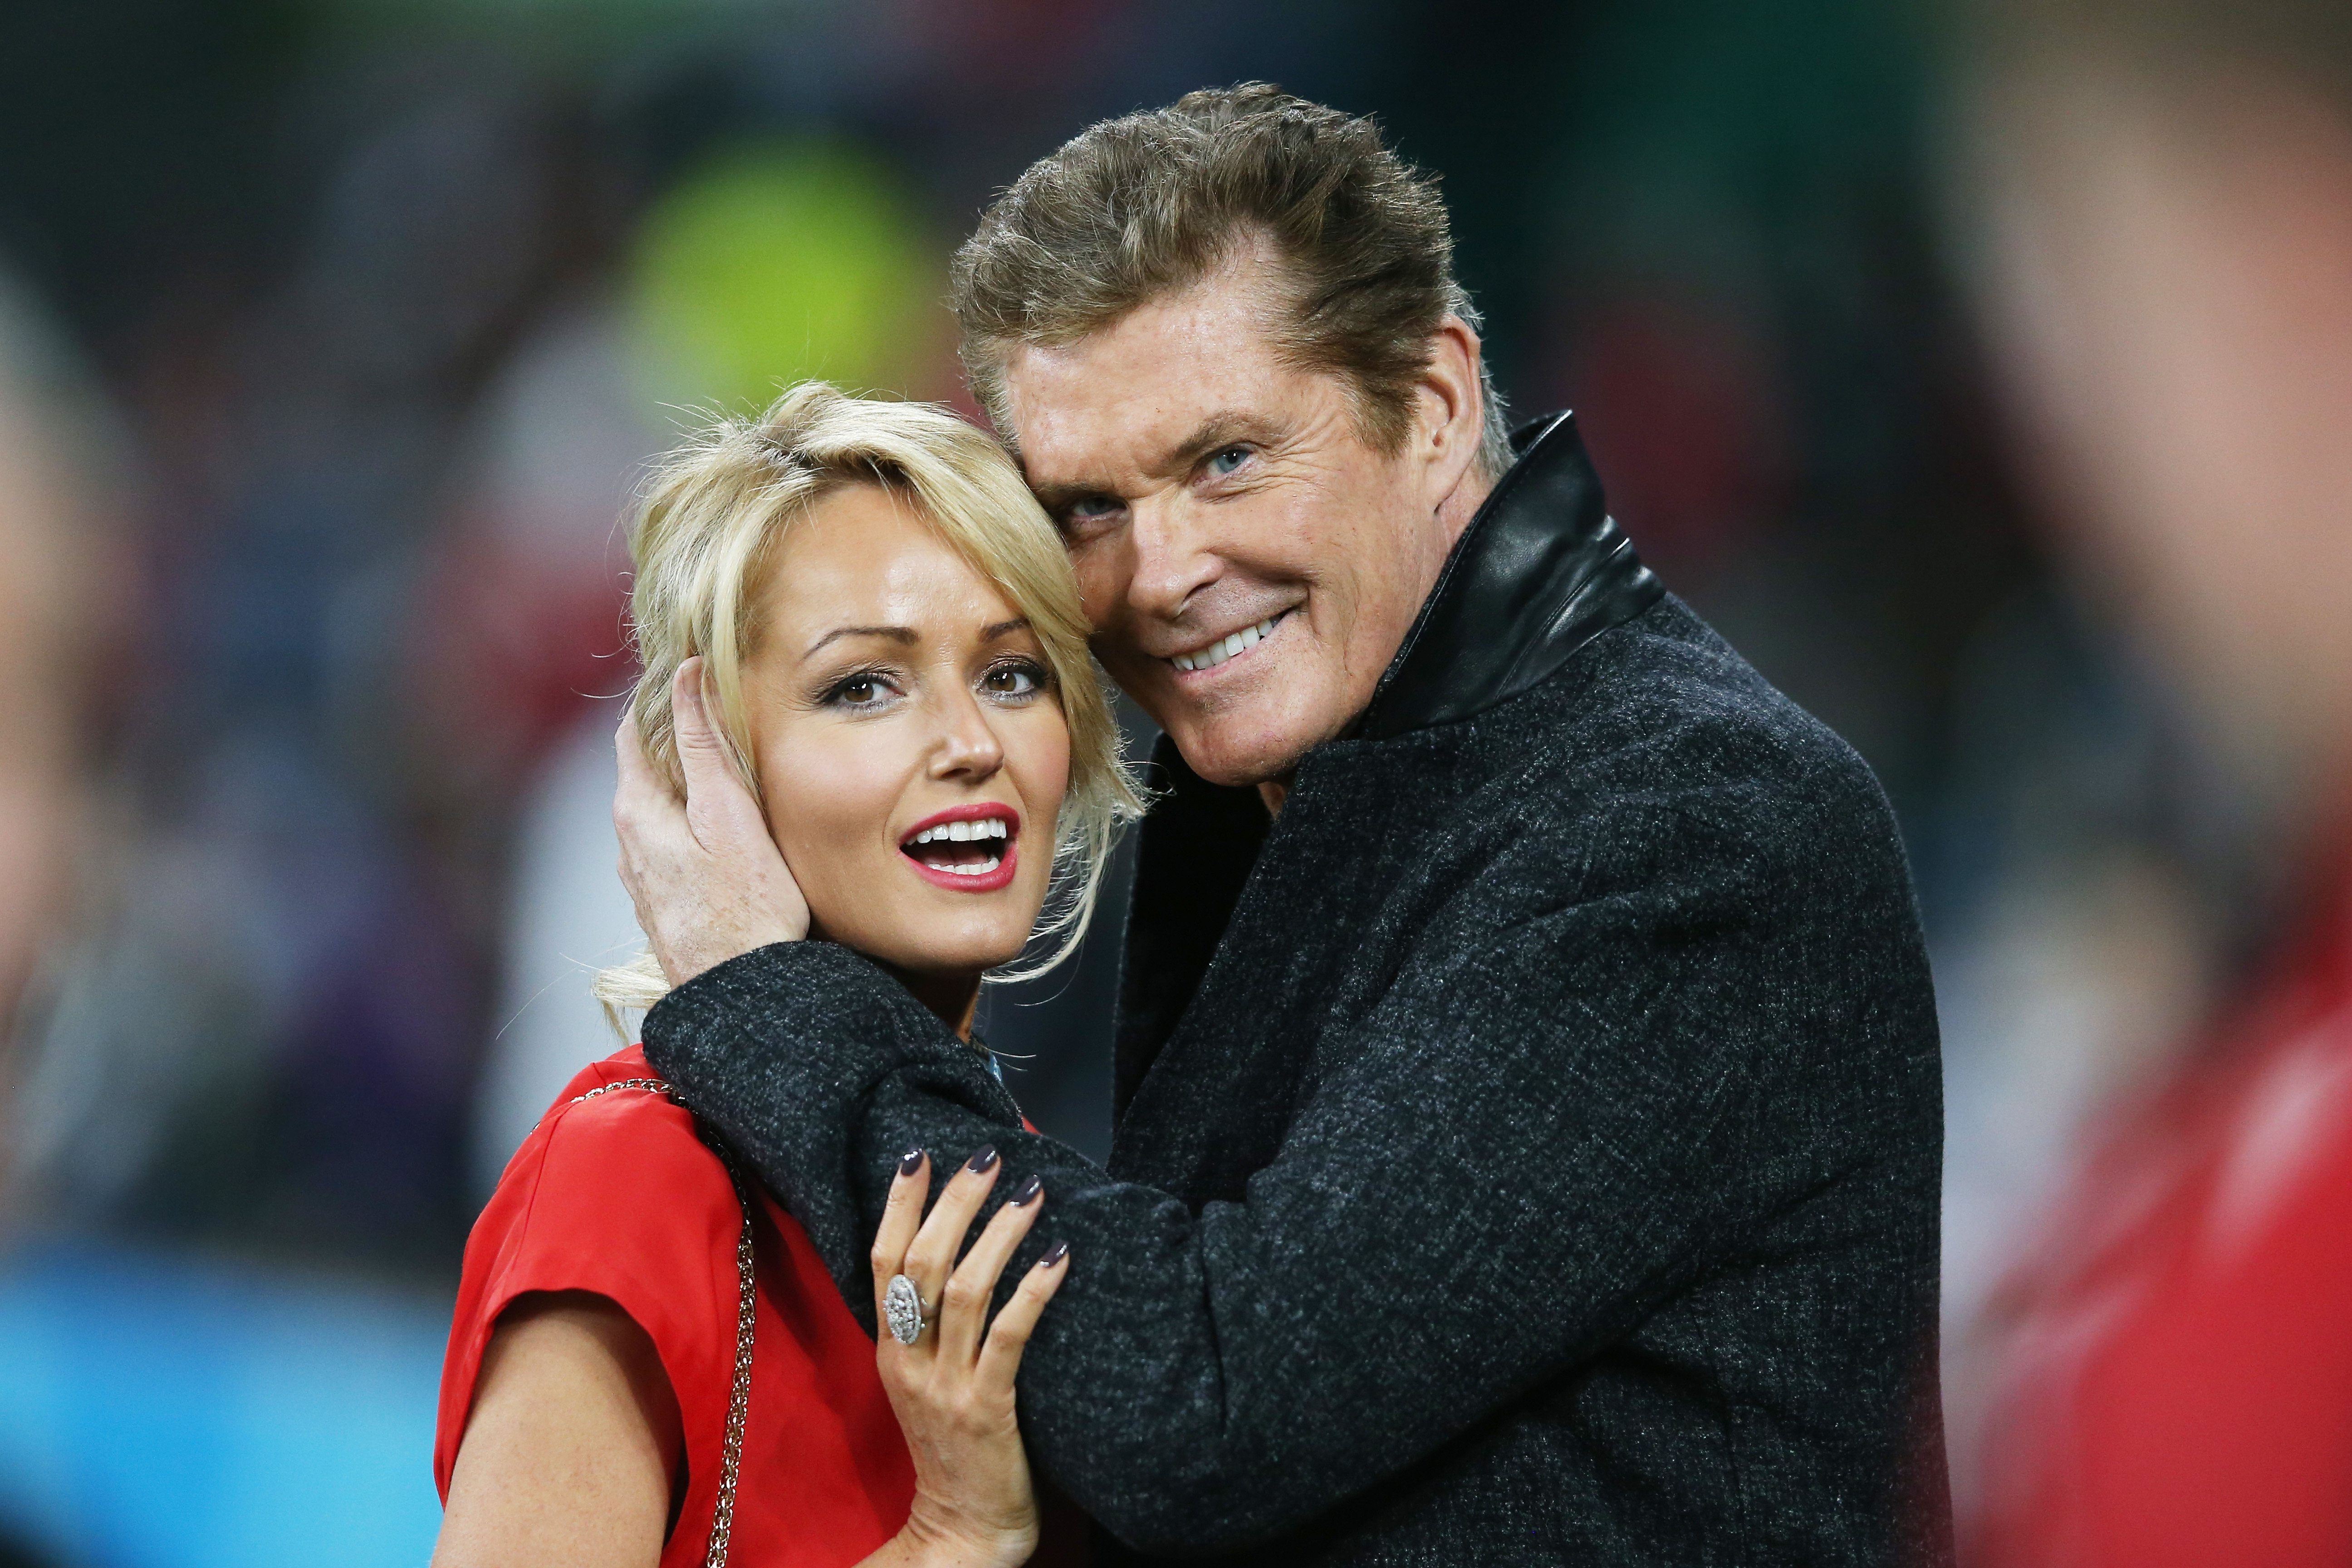 David Hasselhoff hugs welsh girlfriend Hayley Roberts during the 2015 Rugby World Cup Pool A match between England and Wales at Twickenham Stadium on September 26, 2015, in London, United Kingdom. | Source: Getty Images.